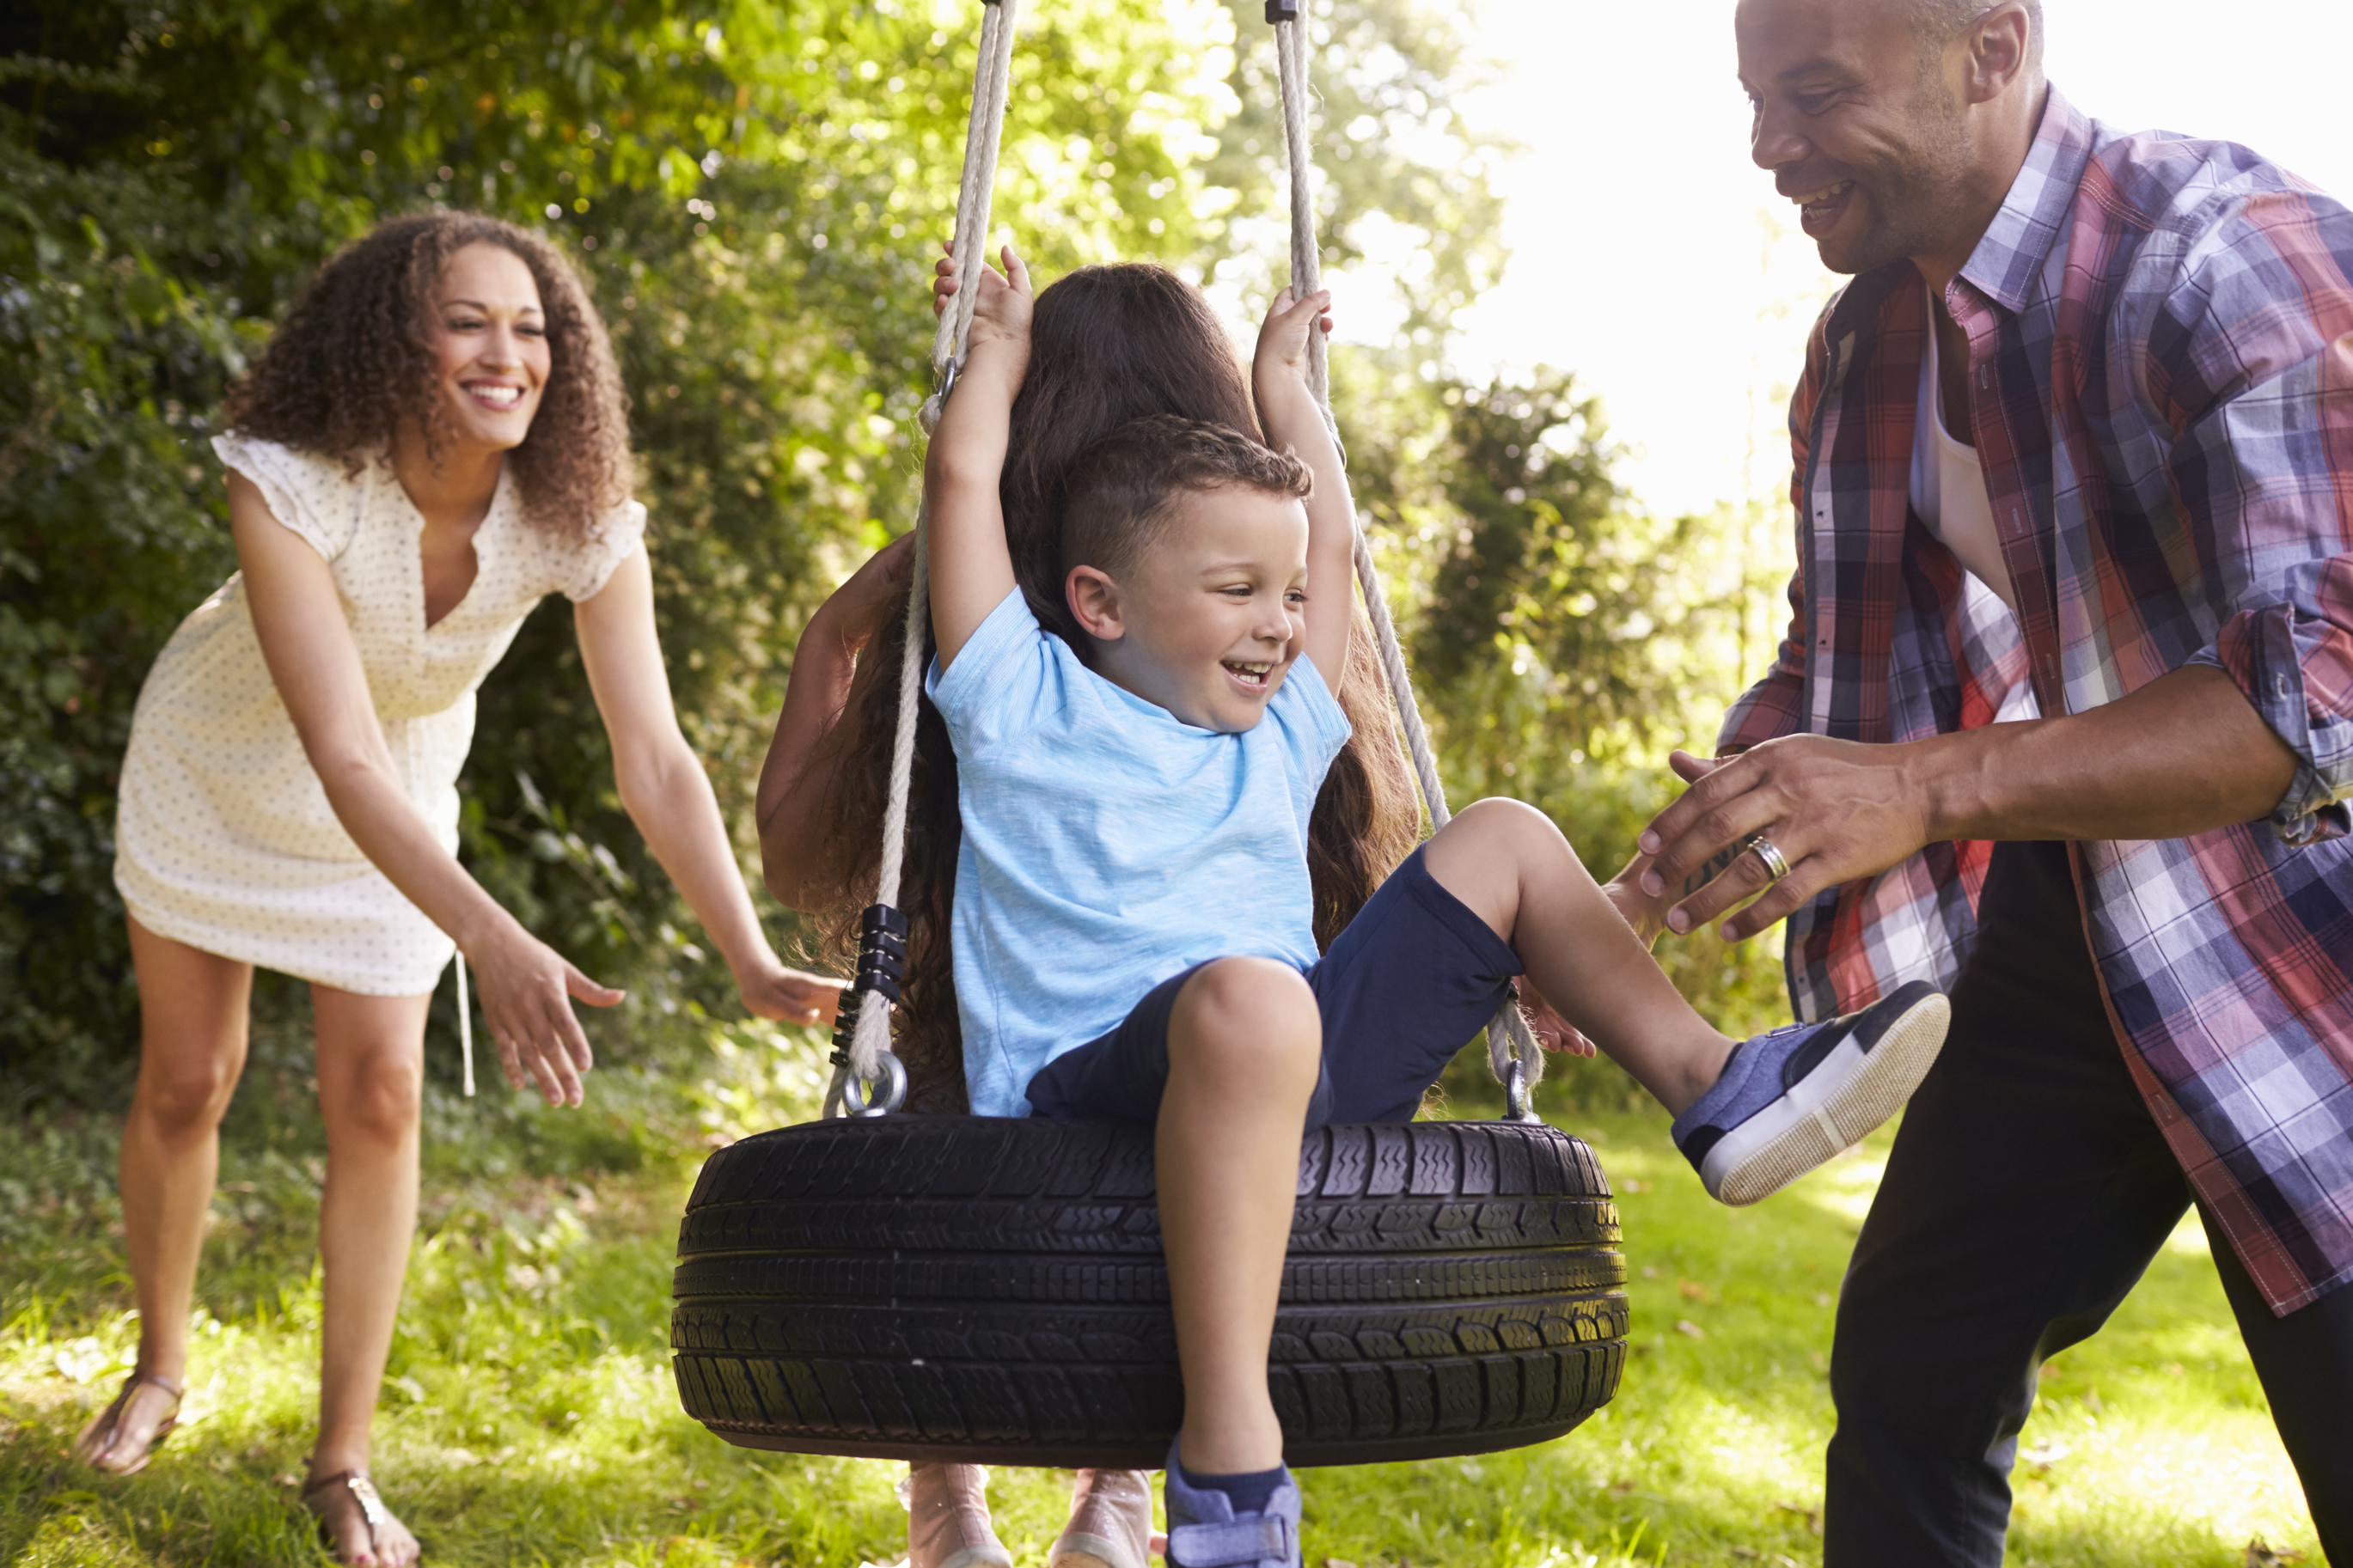 Play Therapy Across The Lifespan: Balance Doing & Being To Thrive